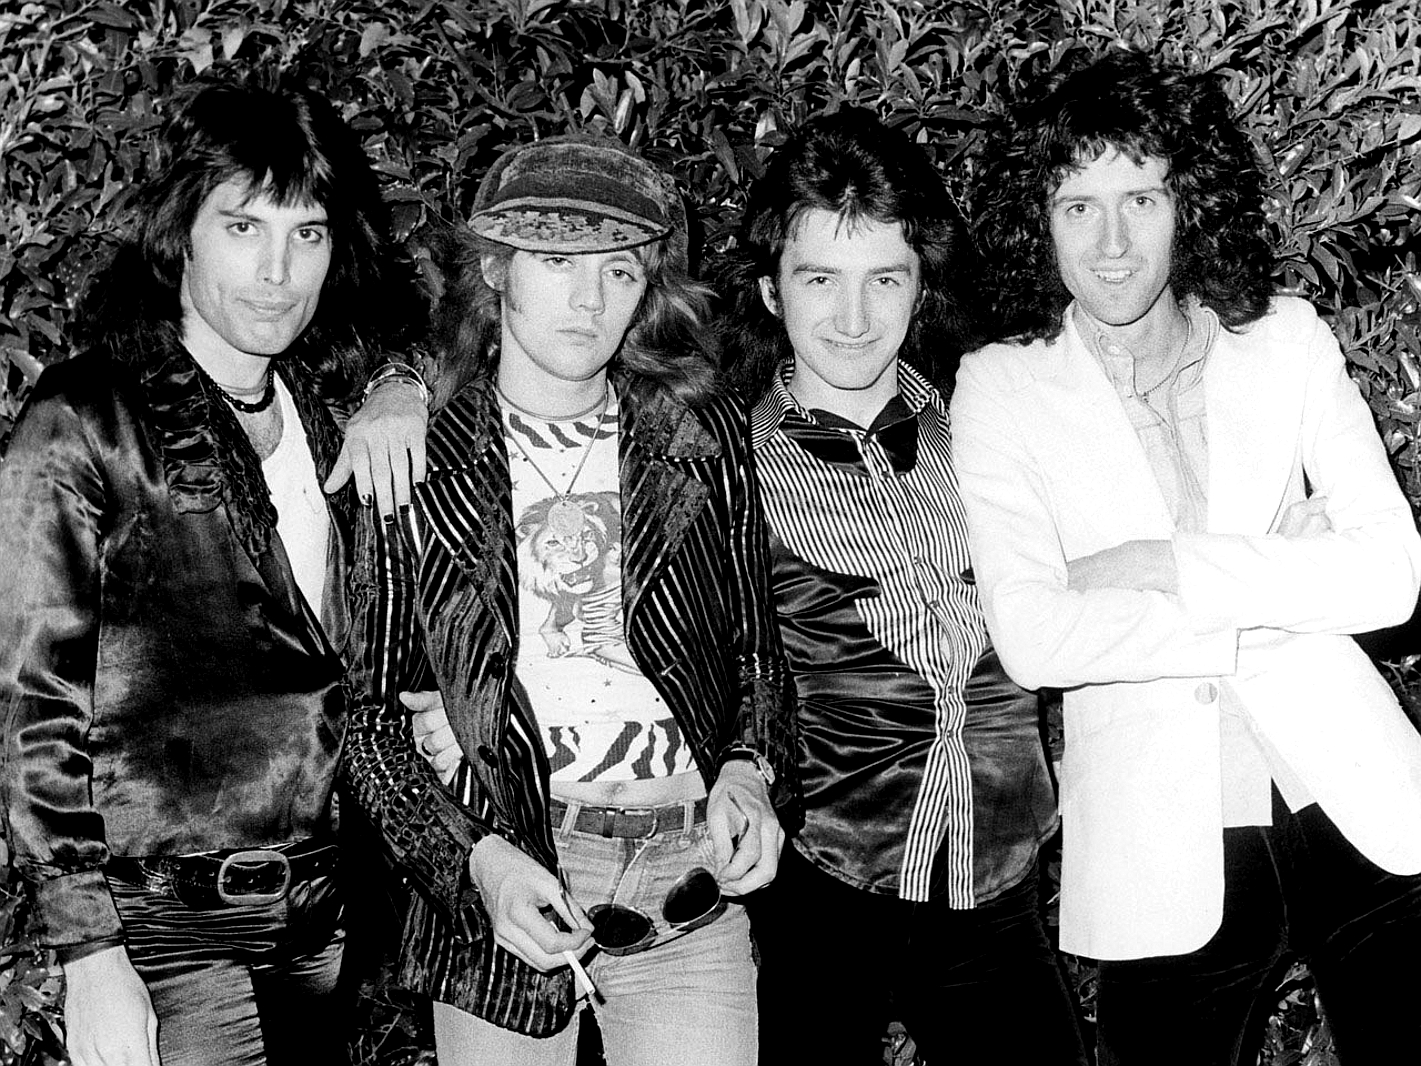 queen-in-1974 usa.jpg